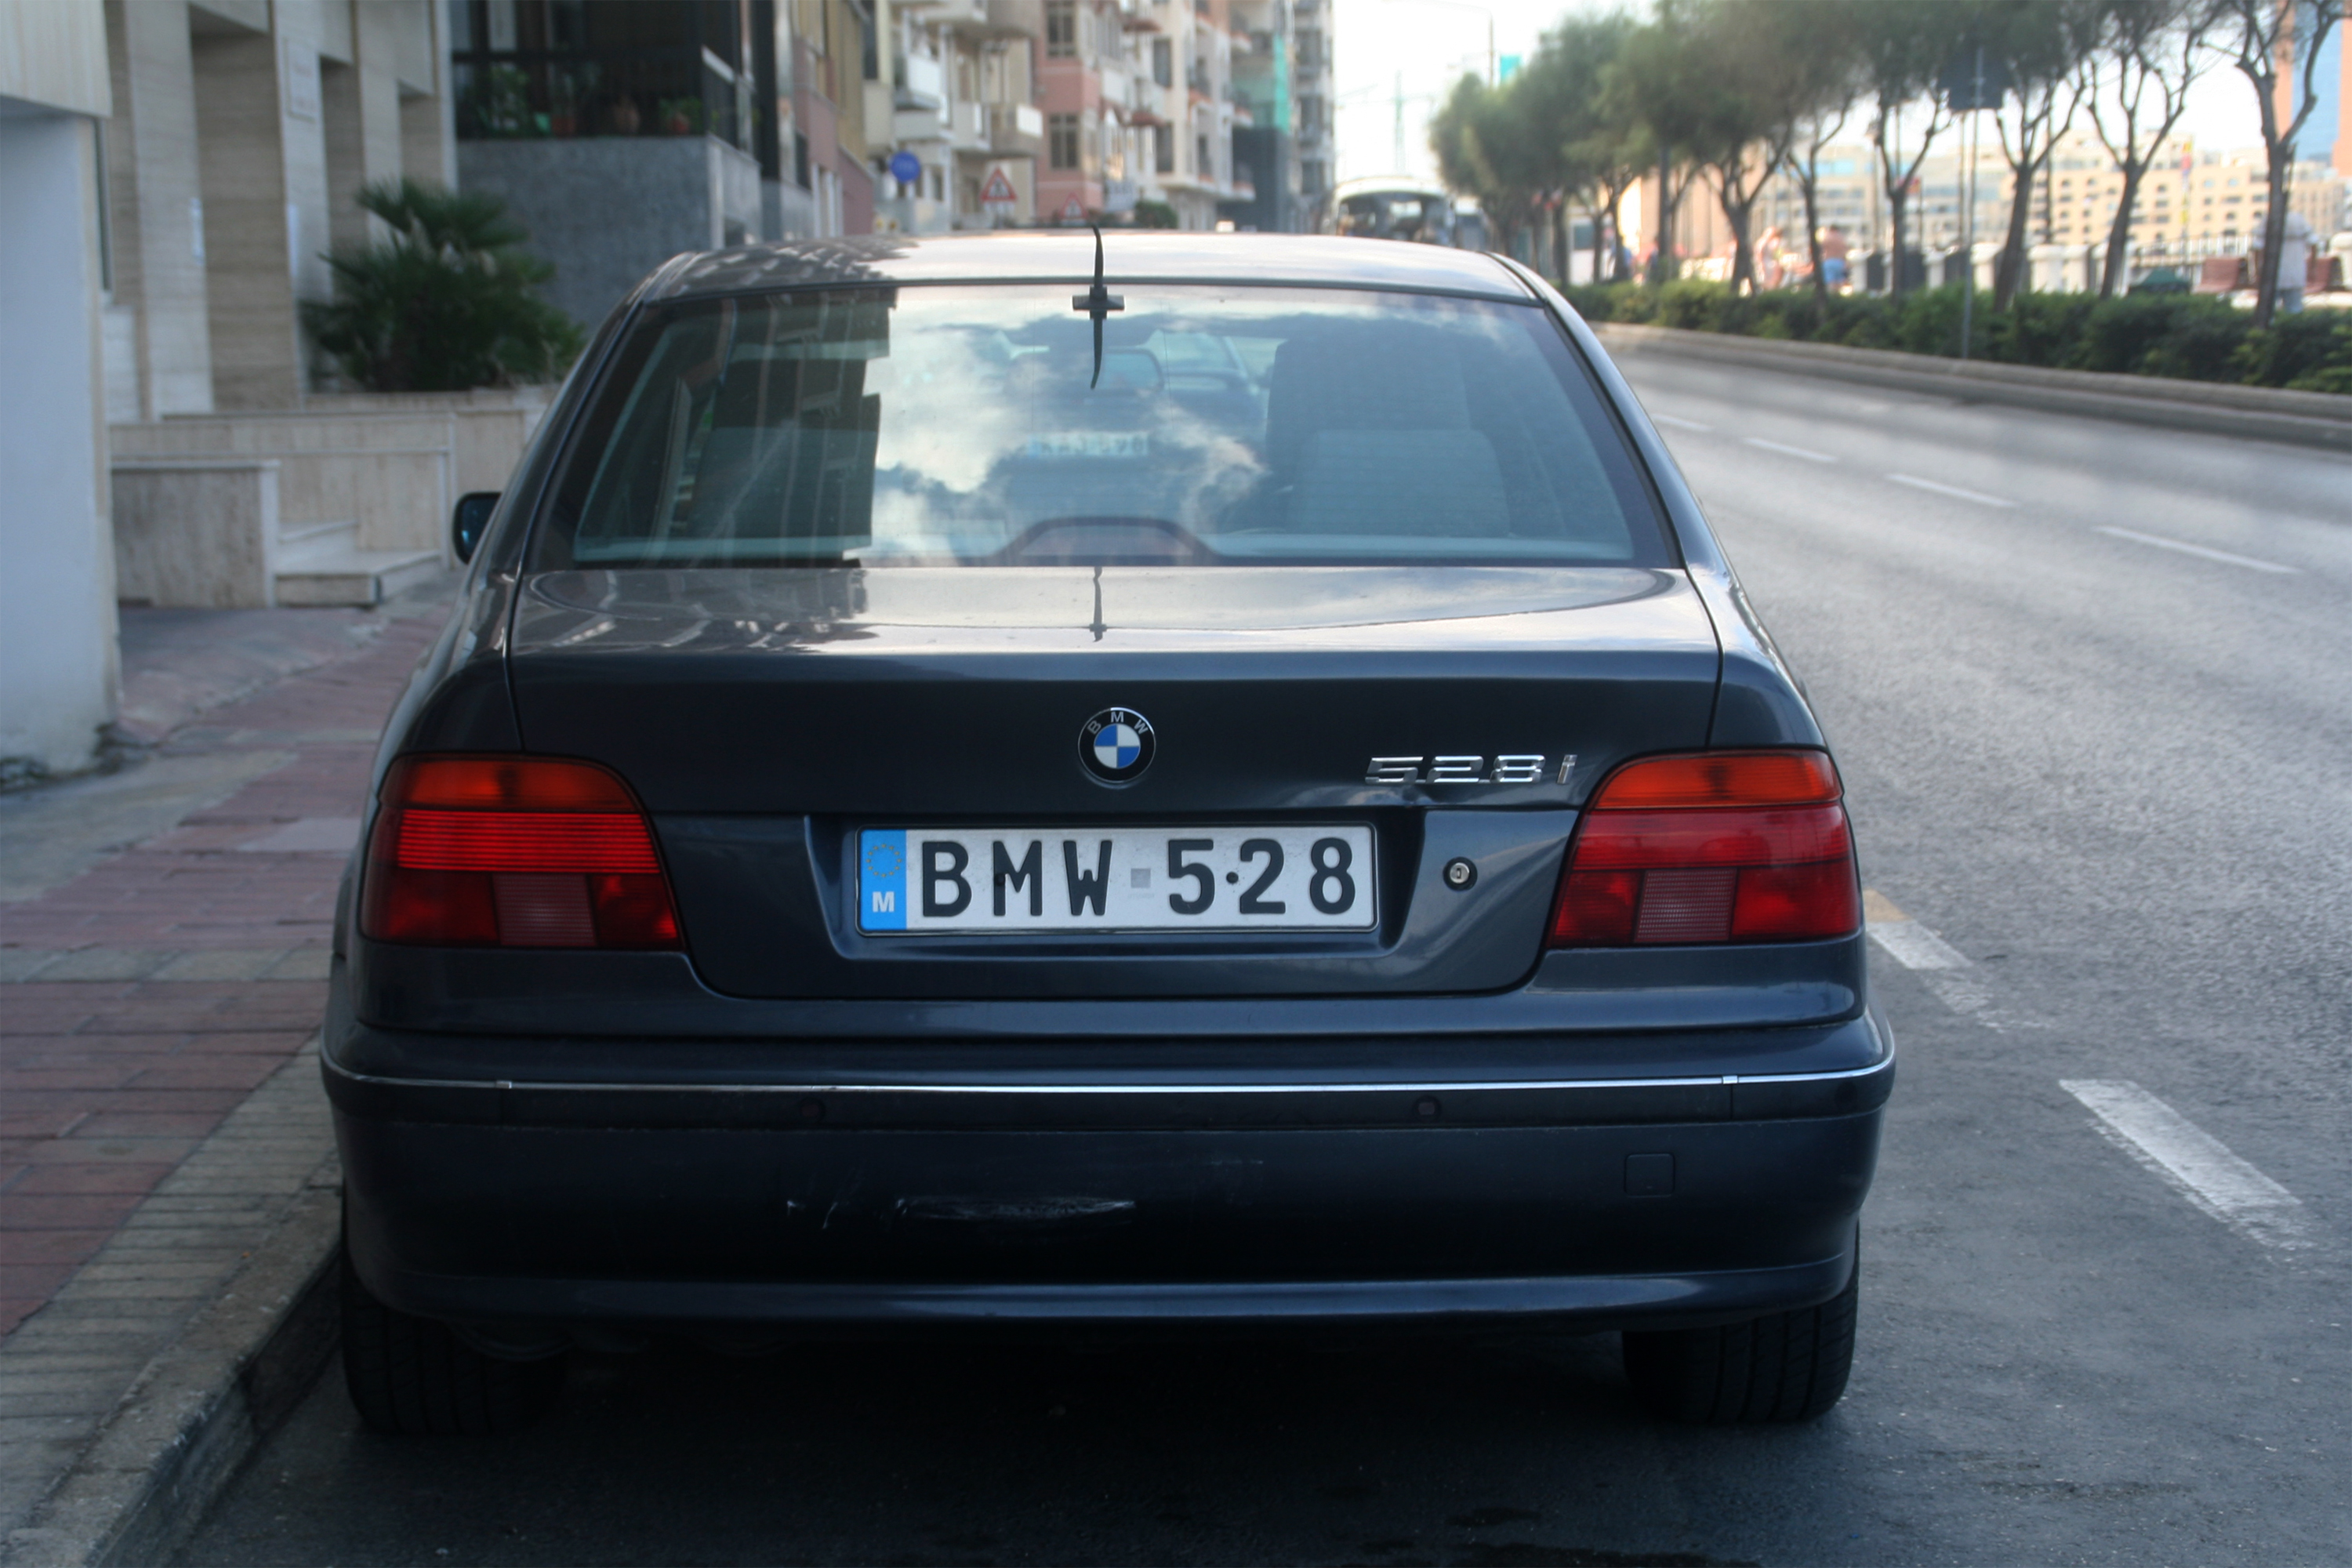 Build A Bmw >> File:Malte - Immatriculation personnalisée - BMW 528.jpg - Wikimedia Commons